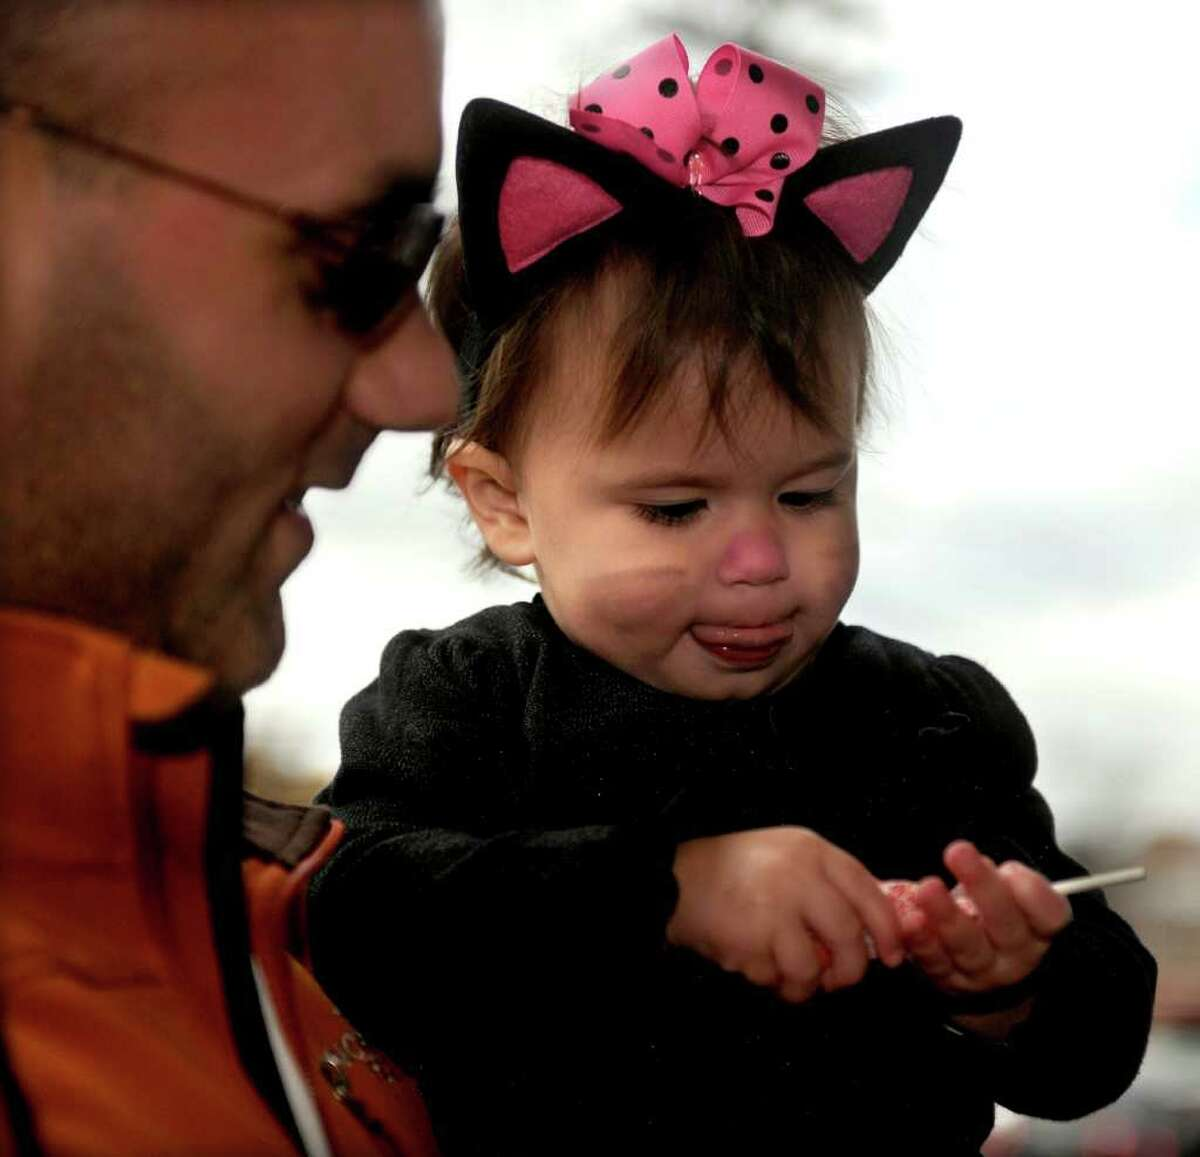 Lily Cina, 1, takes a look at her lollipop during the Trick or Treat on Safety Street event in Fairfield on Friday, October 29, 2010.